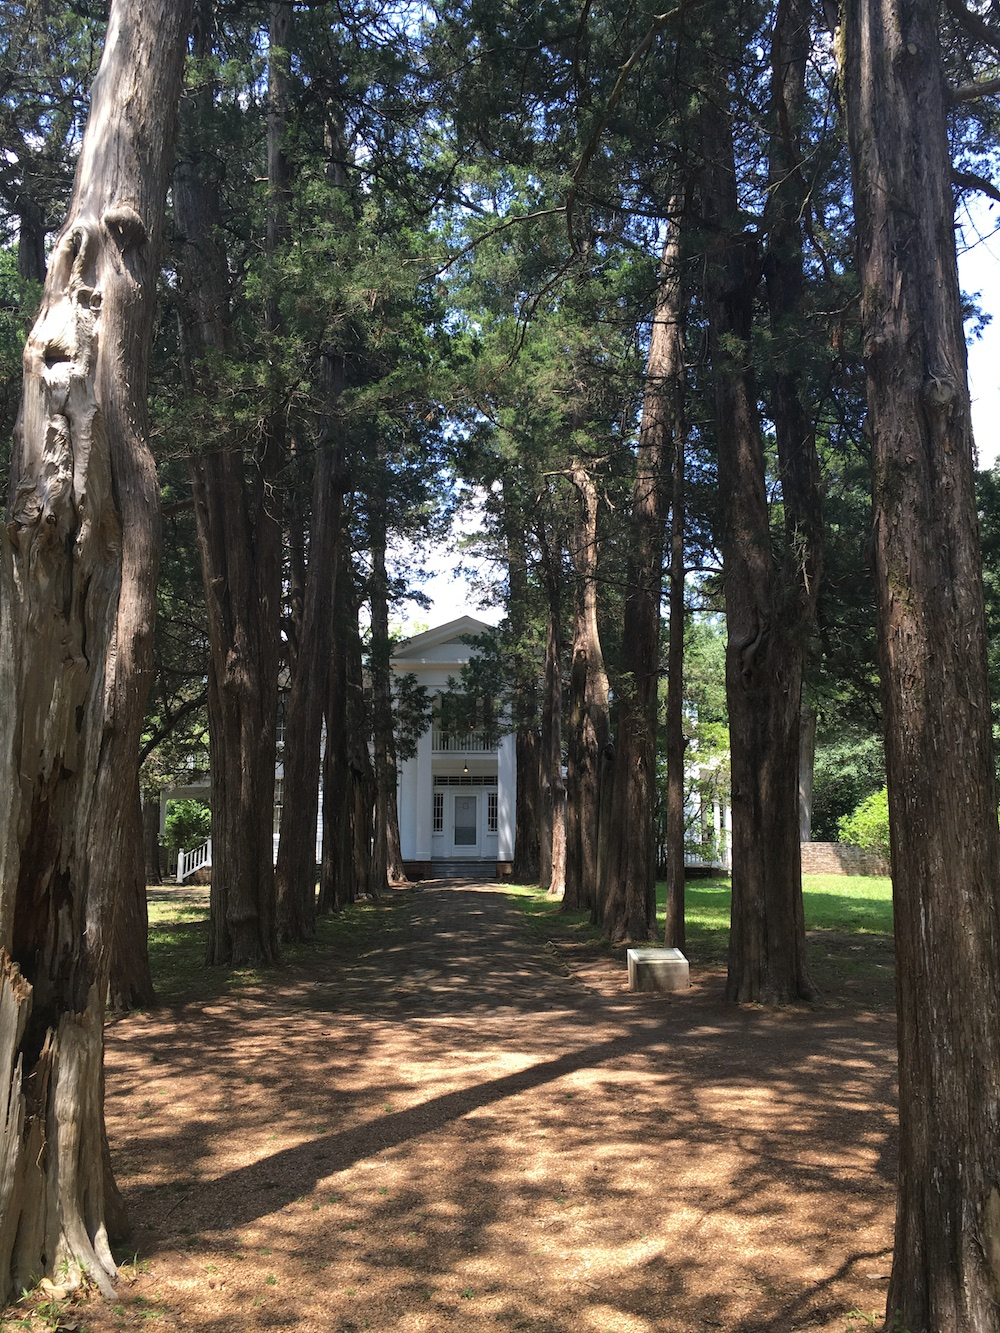 A Few of Our Favorite Things from William Faulkner's Rowan Oak